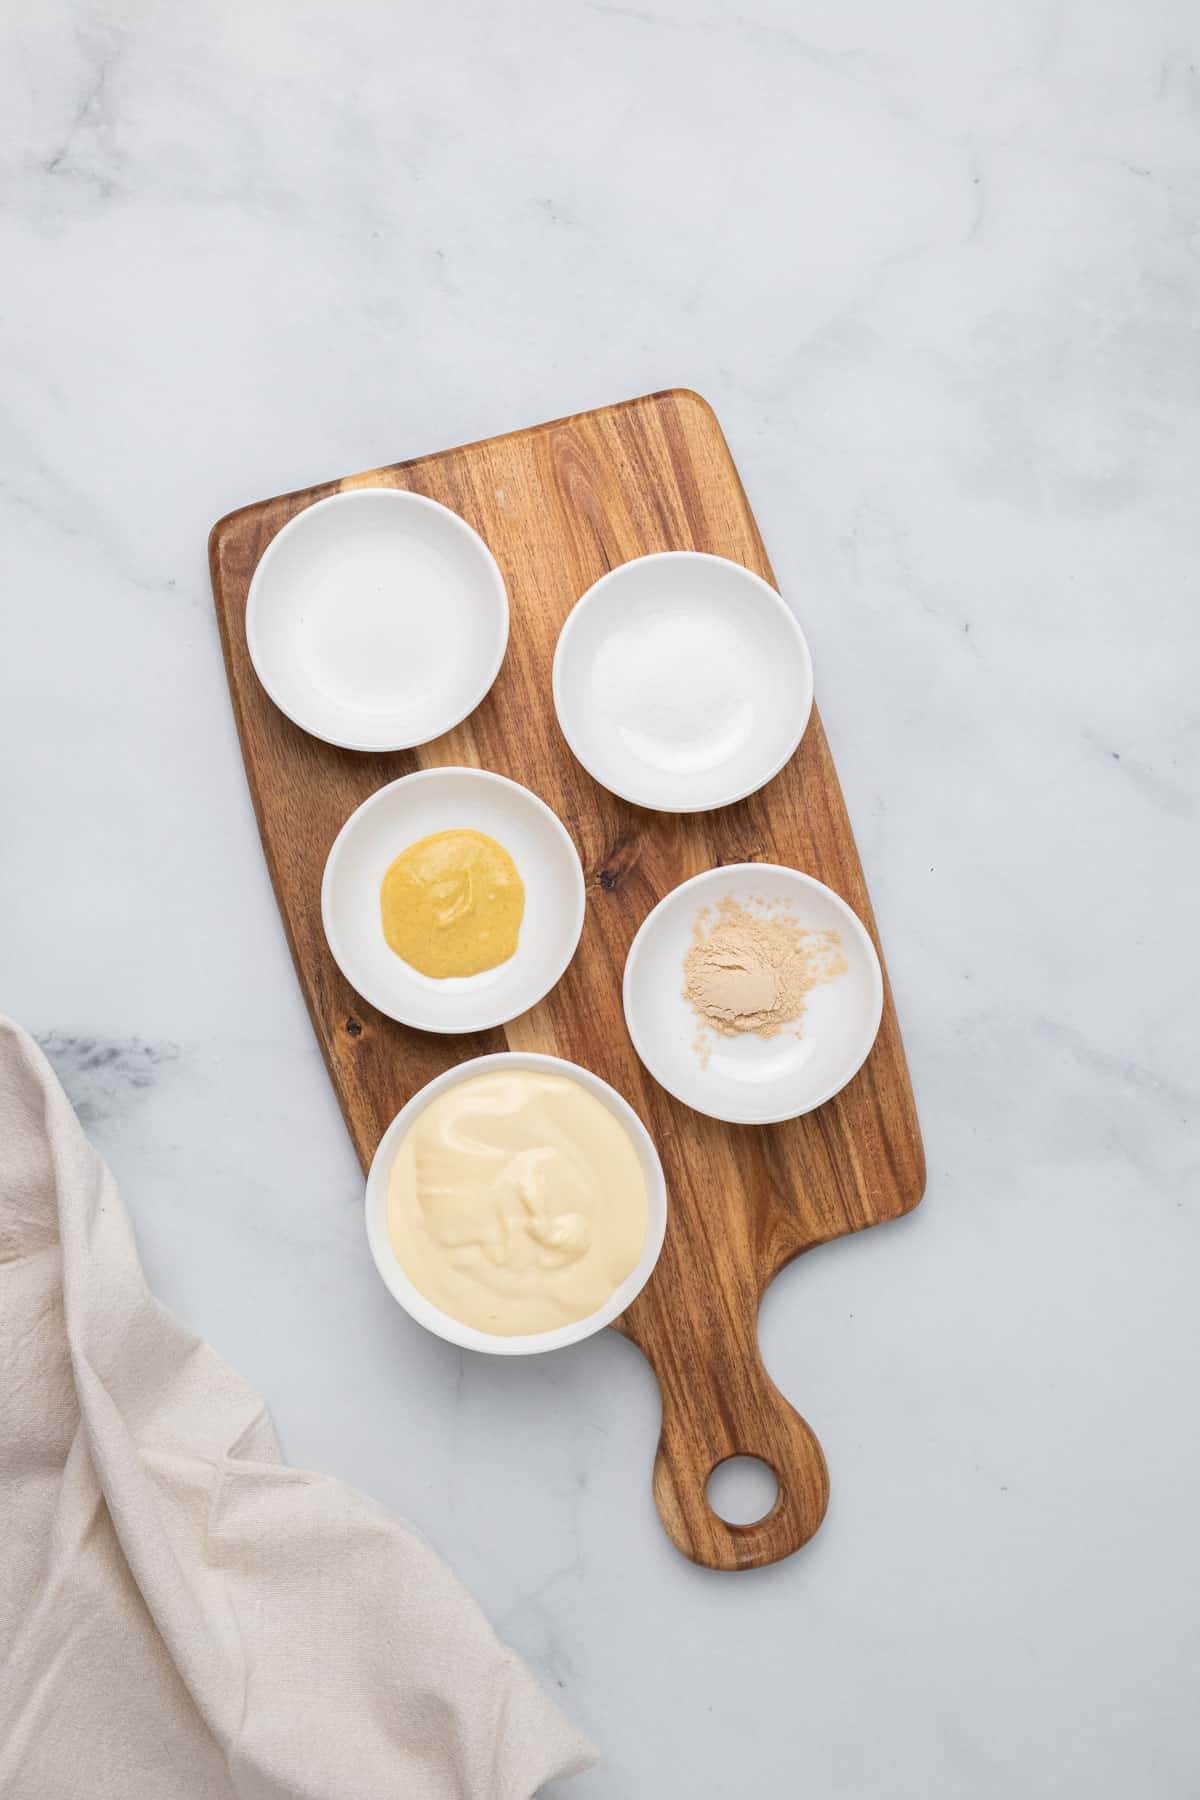 ingredients for the dressing on a wooden board